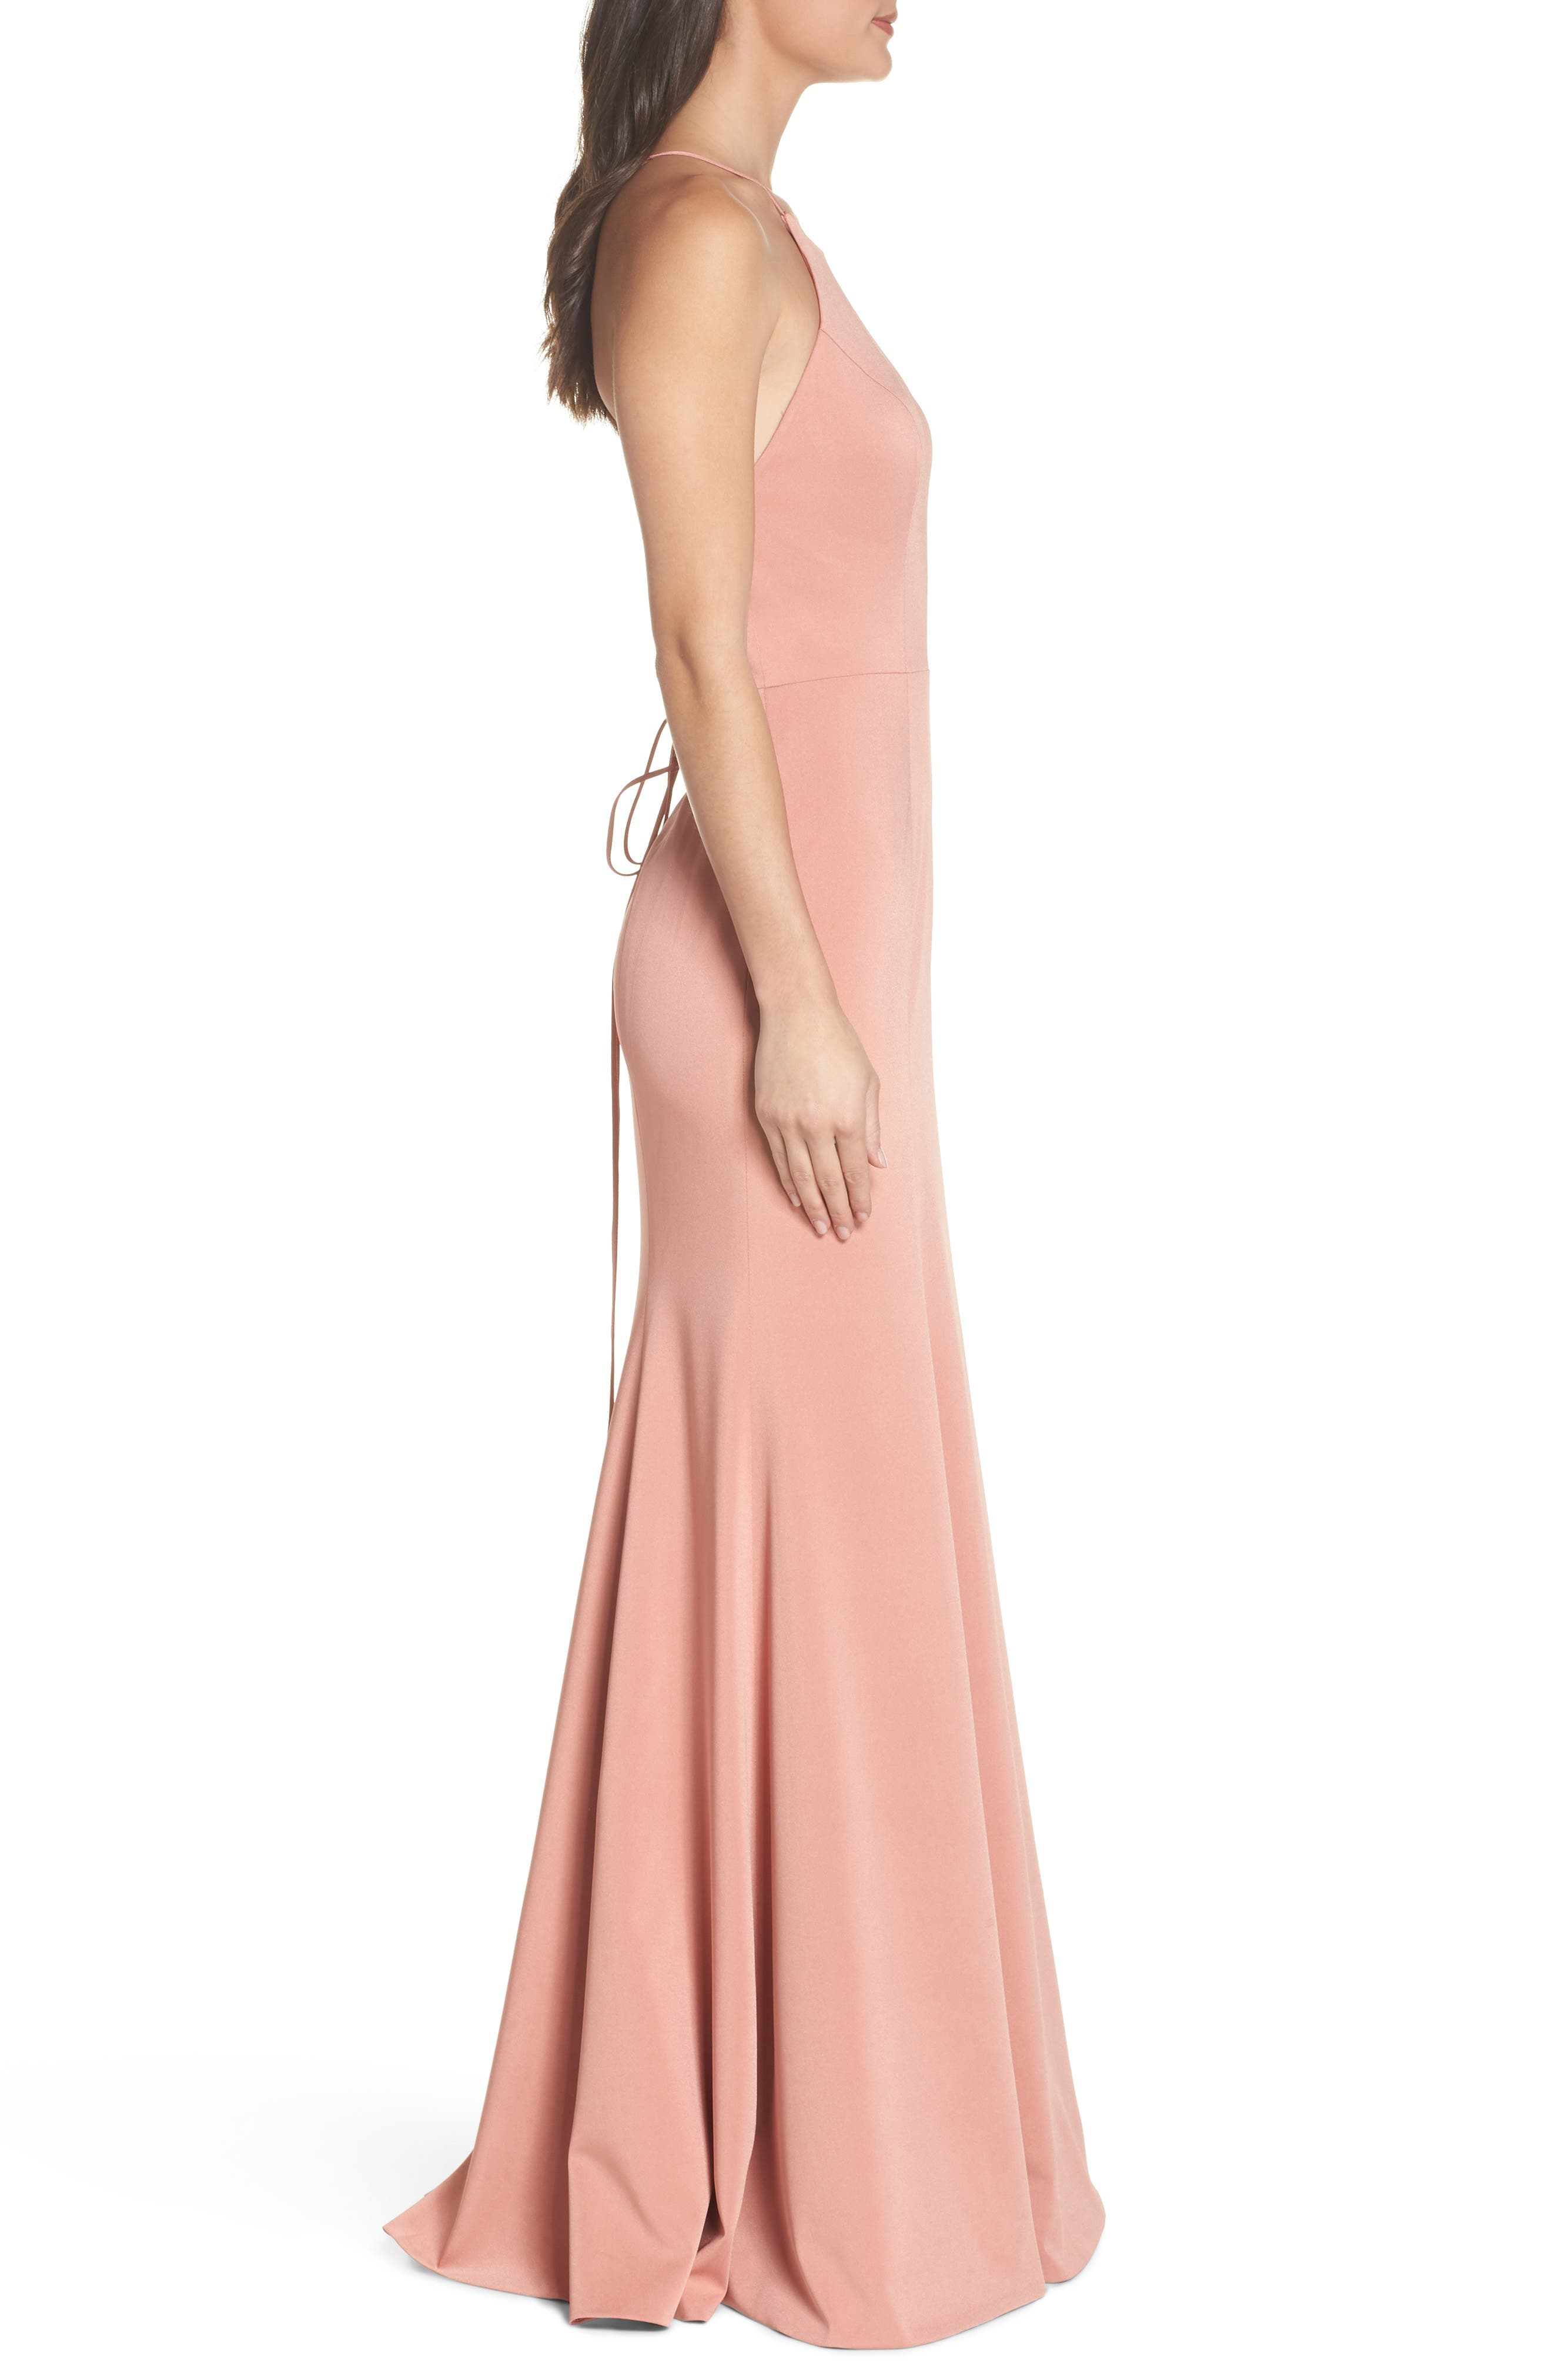 Naomi Luxe Crepe Halter Gown,                             Alternate thumbnail 3, color,                             Sedona Sunset